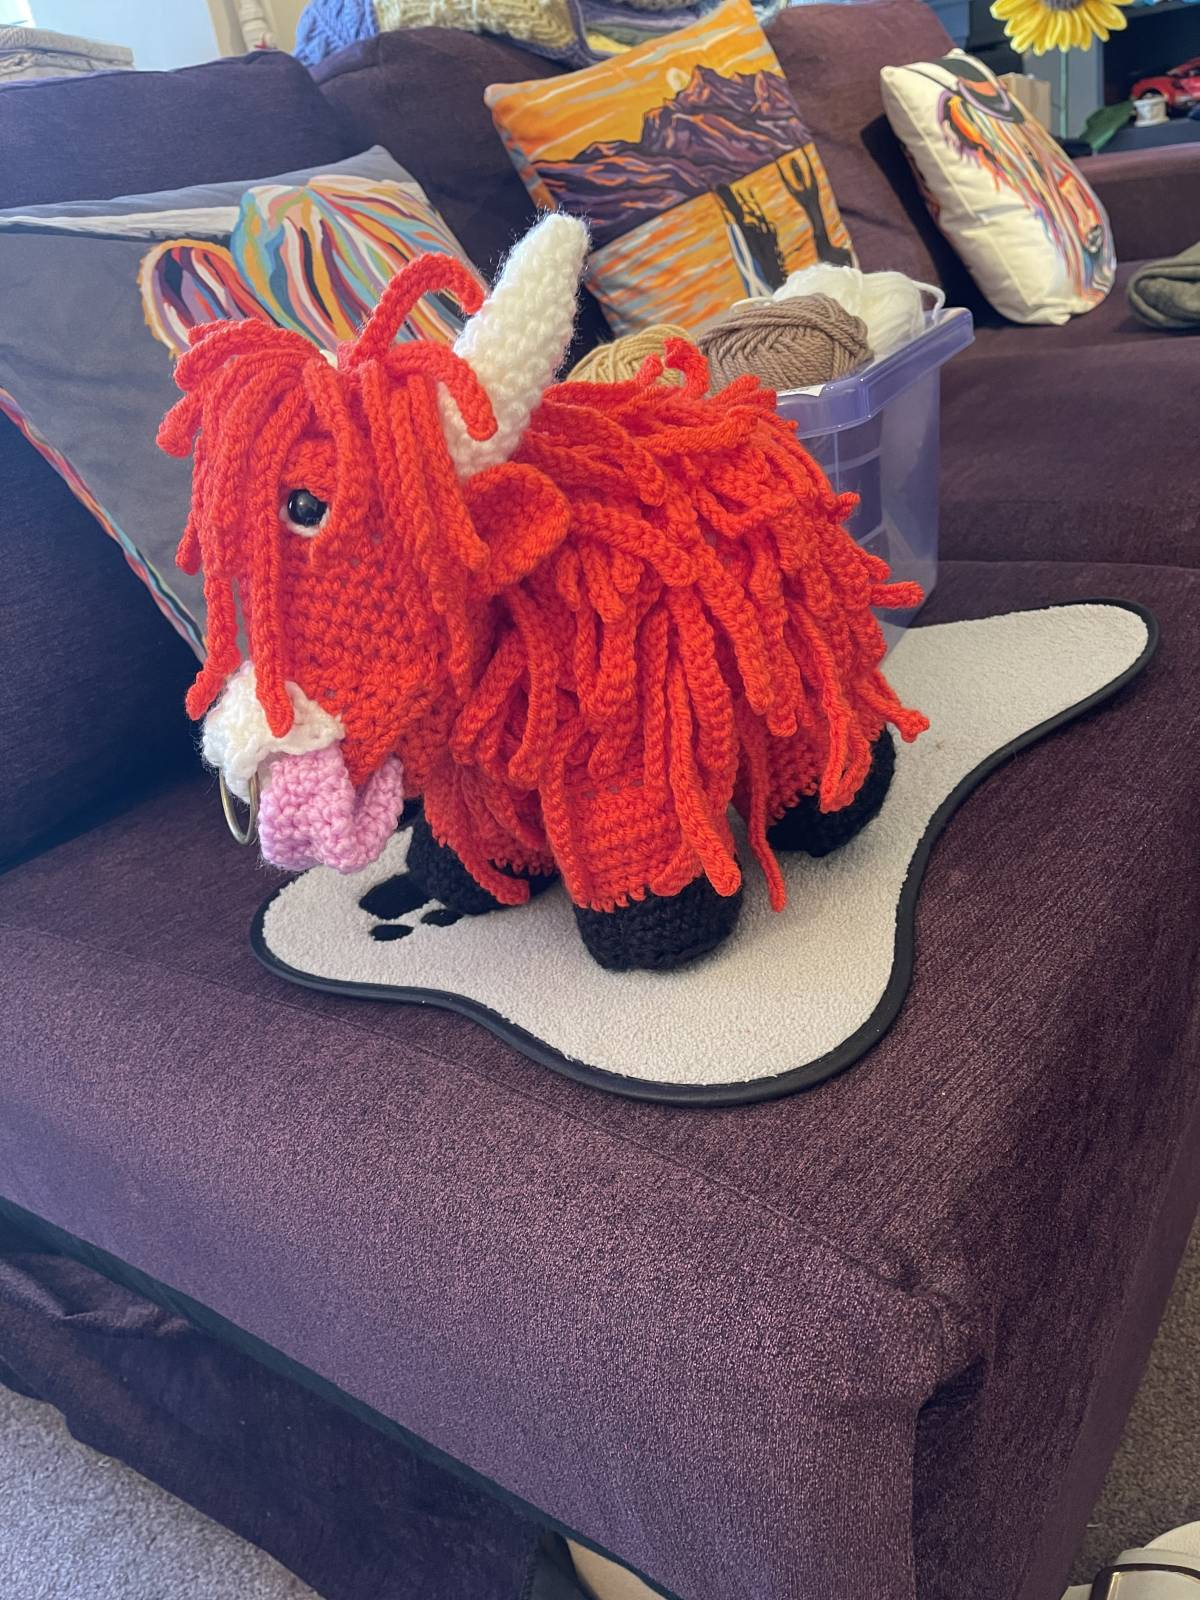 Crochet highland cow amigurumi pattern review by heather laing for cottontail & whiskers